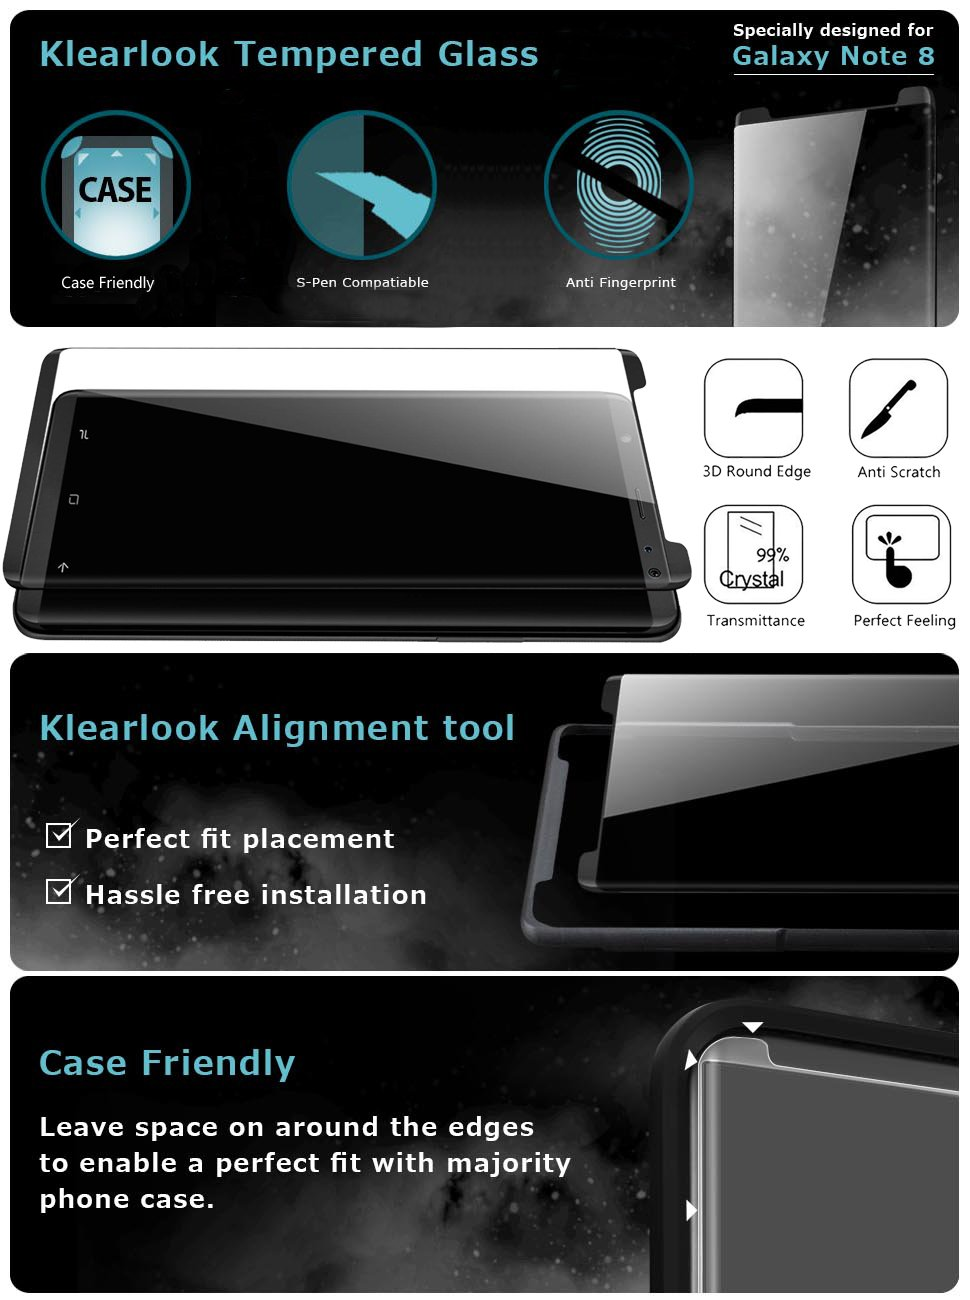 Galaxy Note  Screen Protector Glass Has Applicator Case